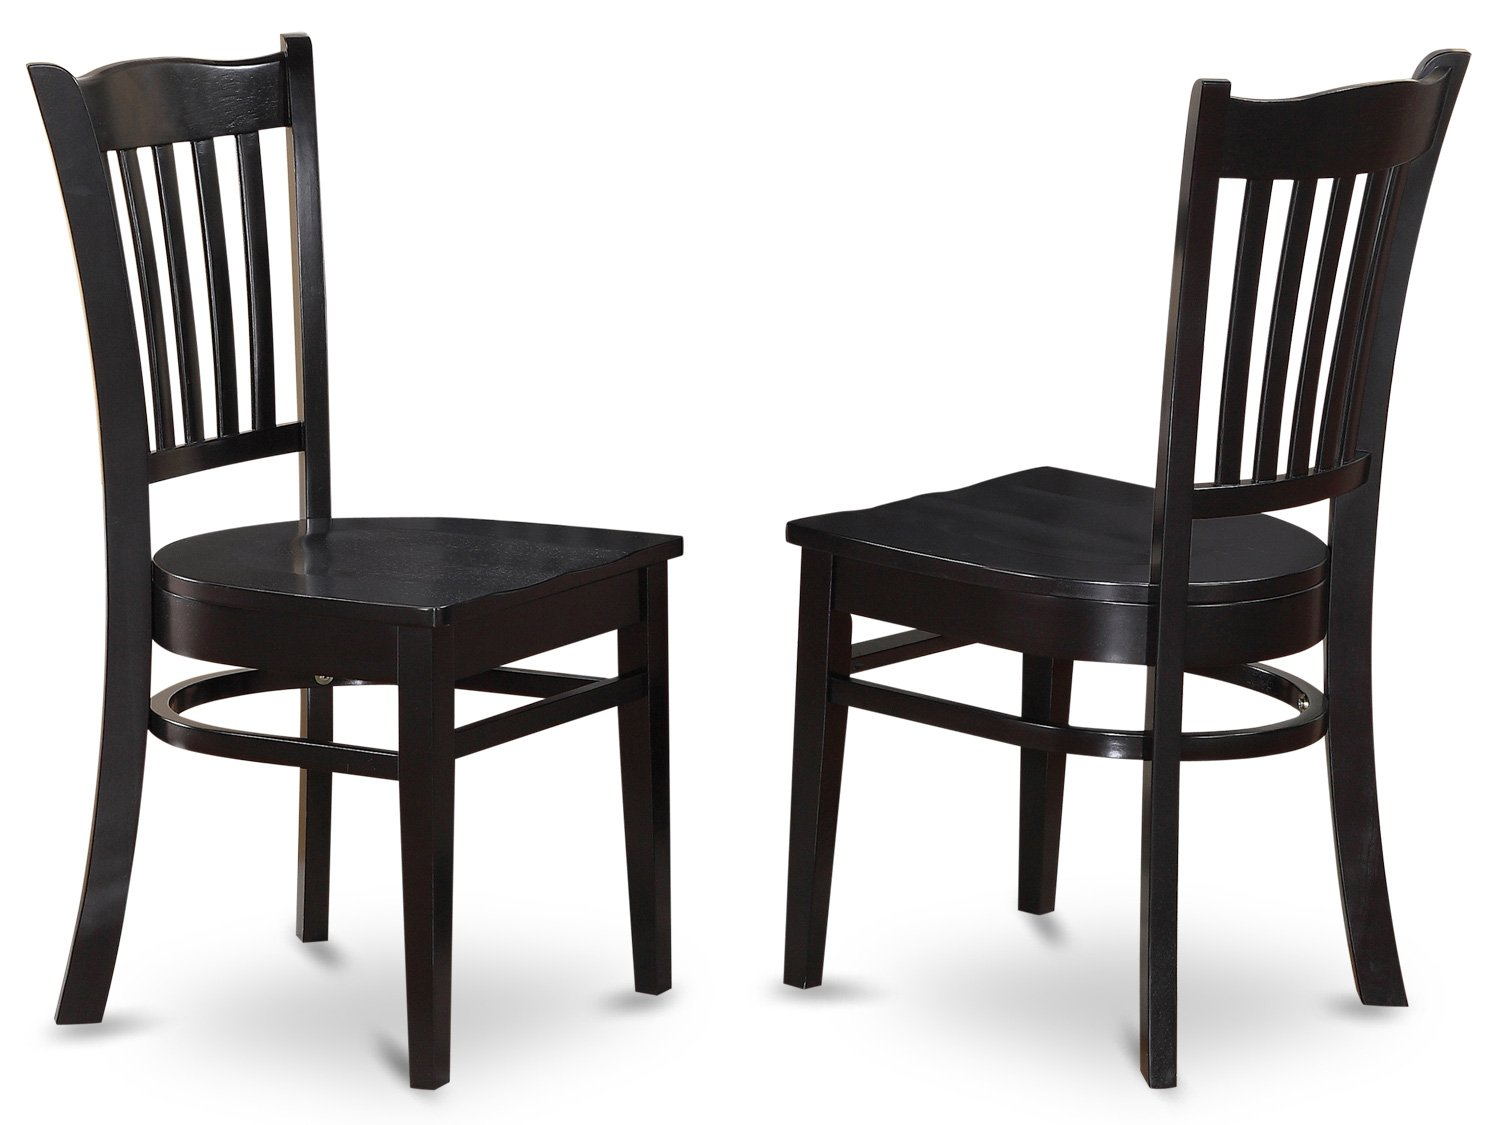 Amazon.com: East West Furniture GRC WHI W Dining Chair Set With Wood Seat,  White Finish, Set Of 2: Kitchen U0026 Dining